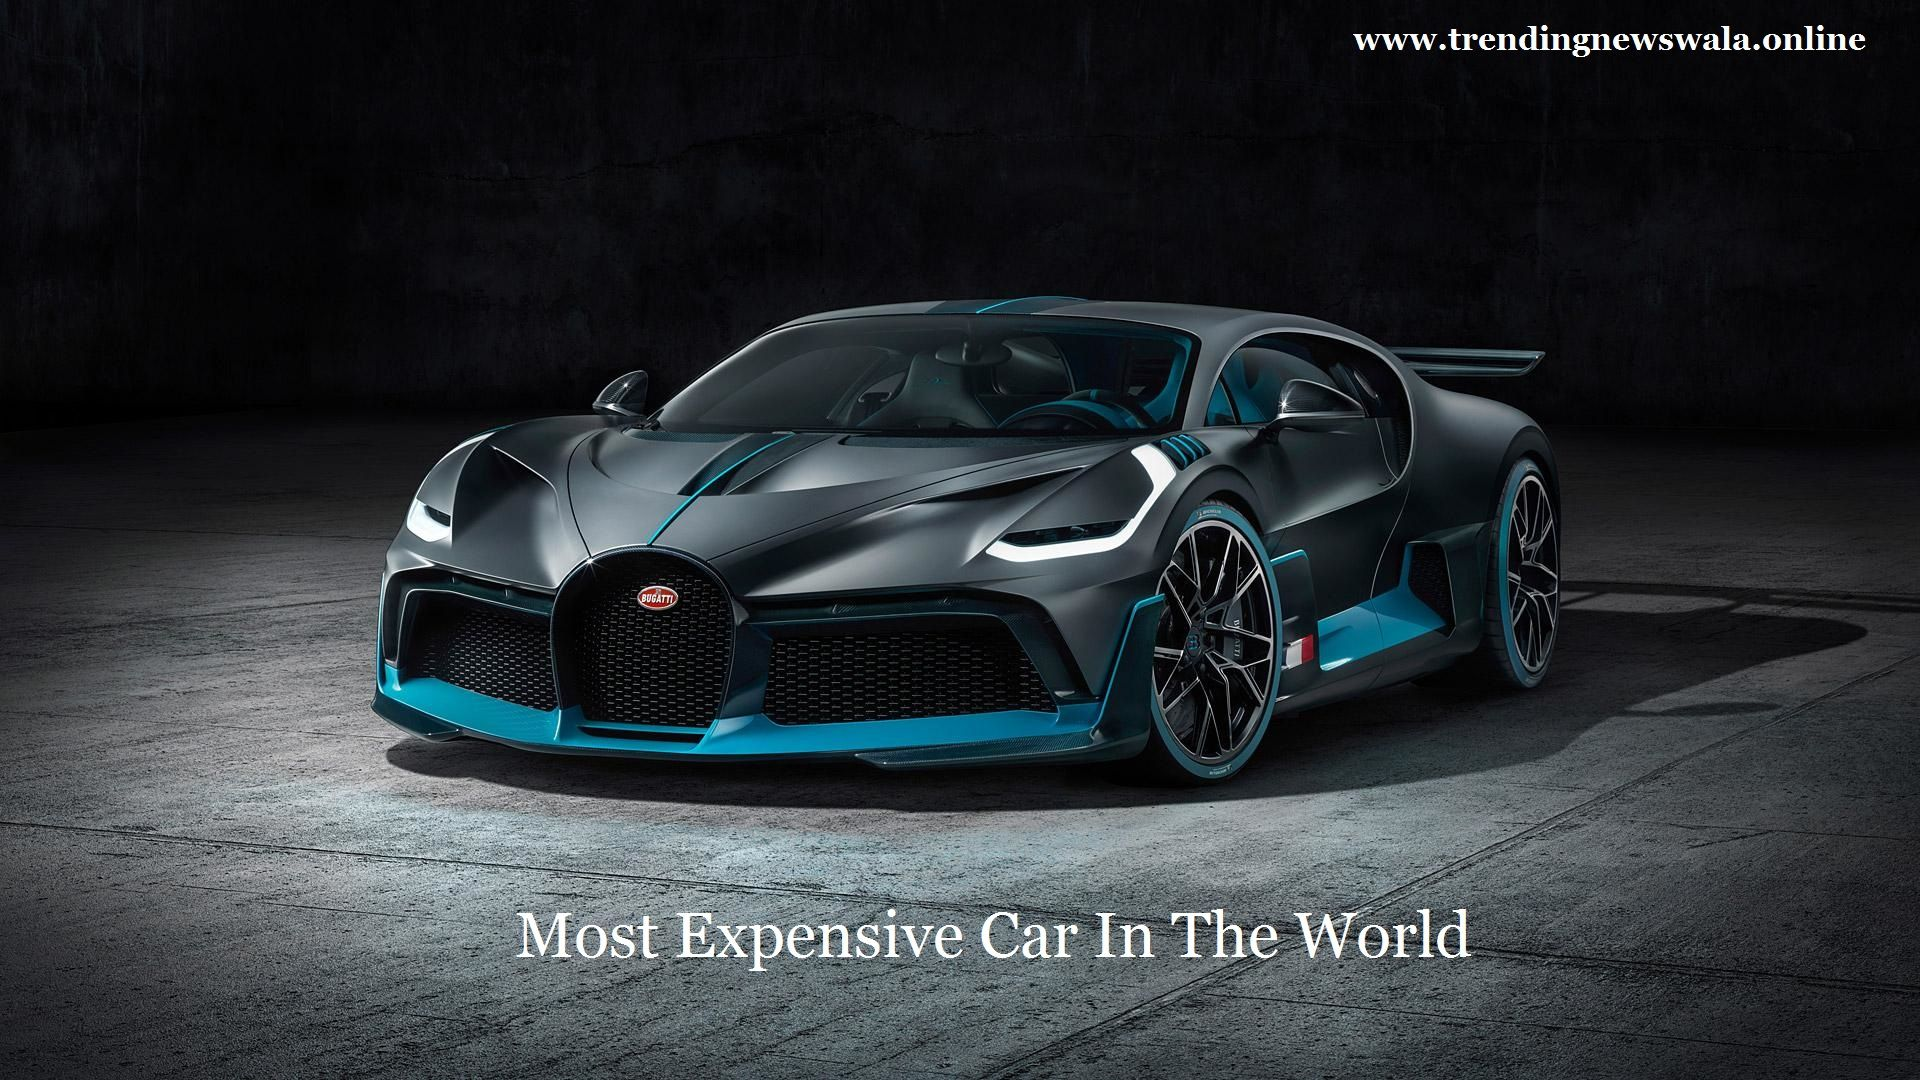 Top 10 Expensive Car In The World